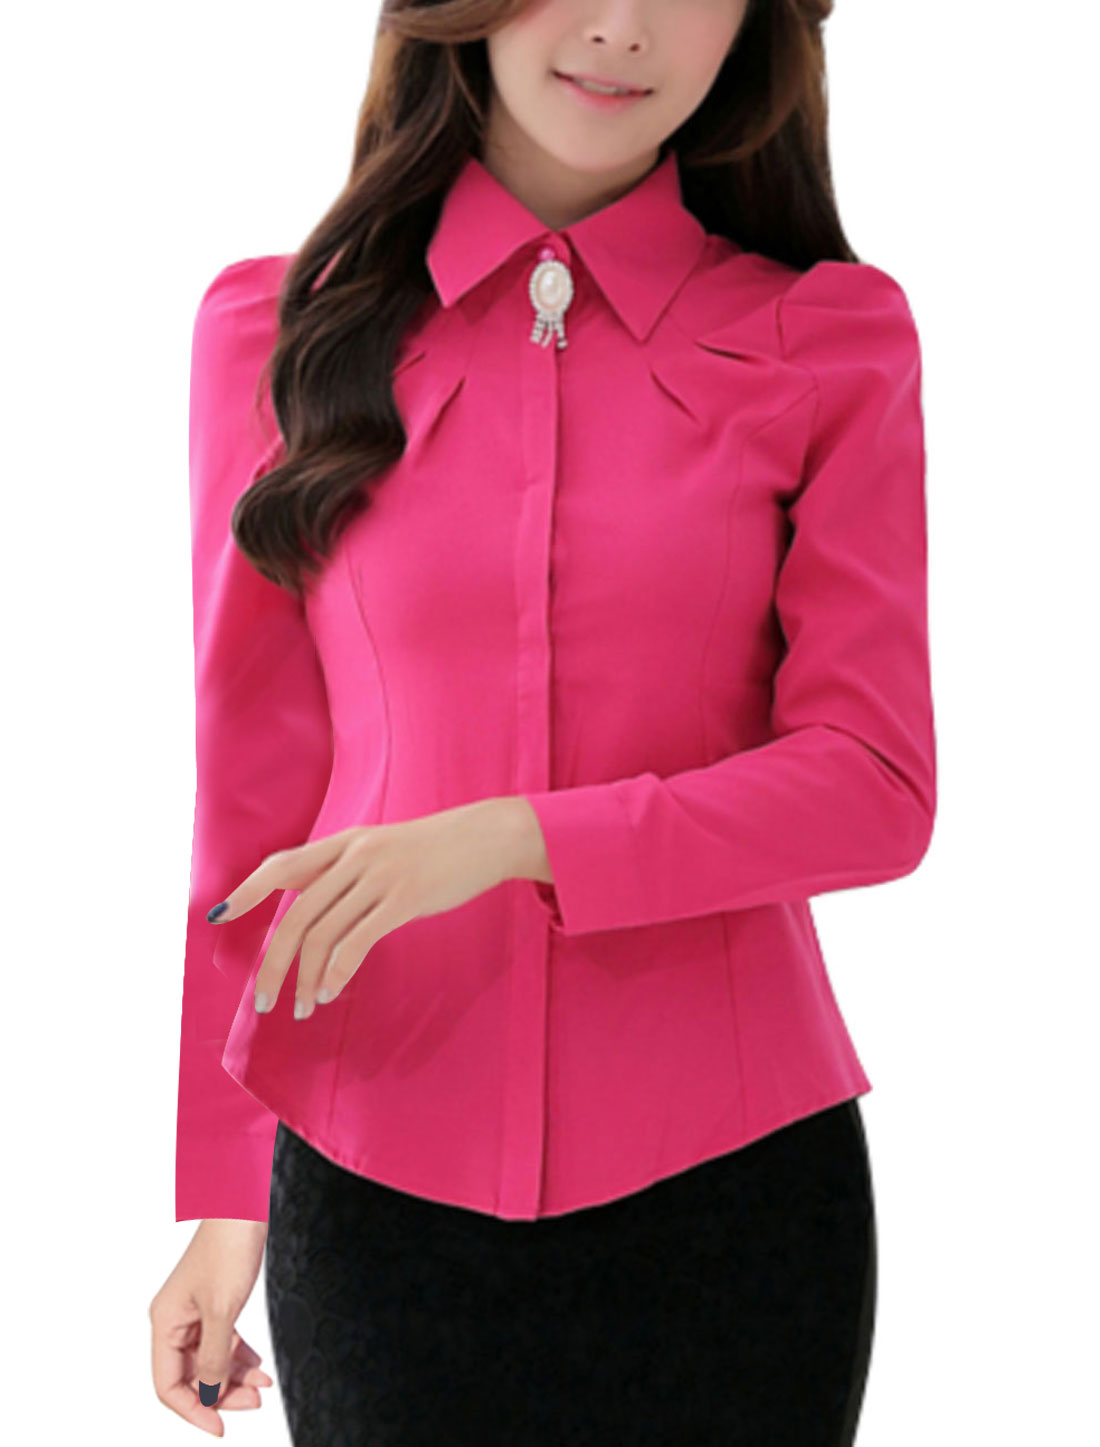 Point Collar Hidden Button Closed Fuchsia Shirt for Woman M